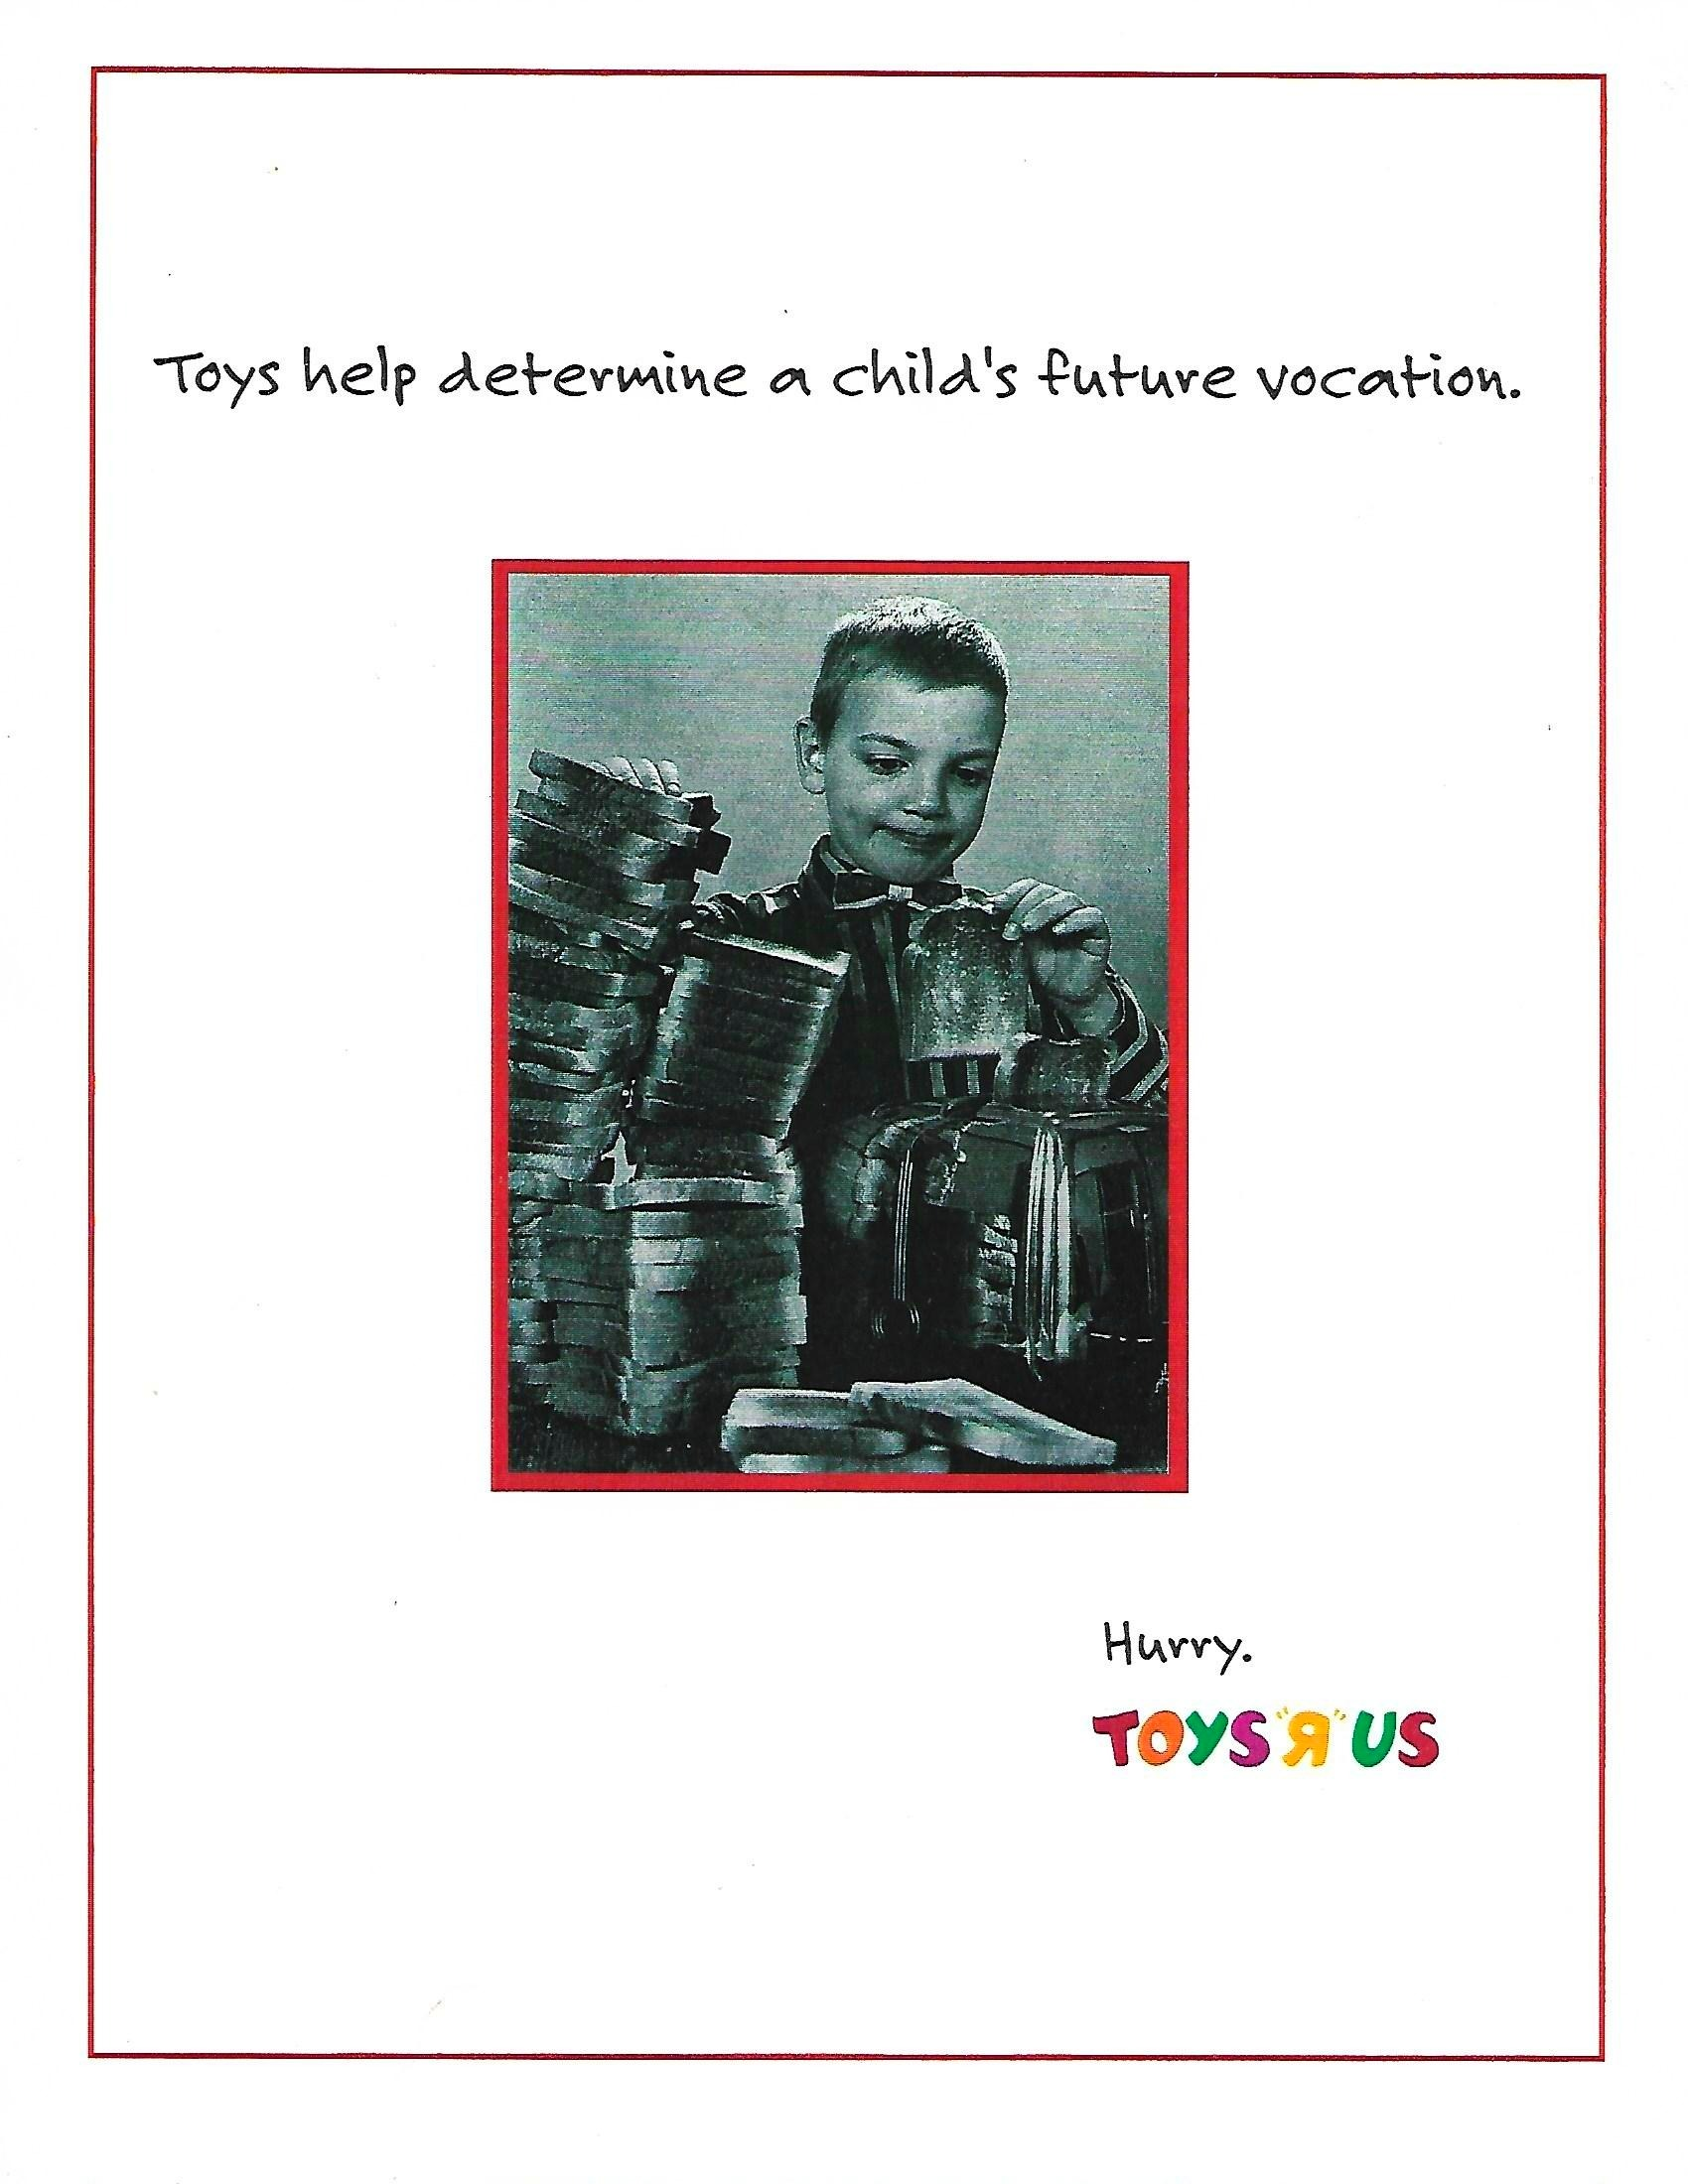 Toys R Us Campaign 1